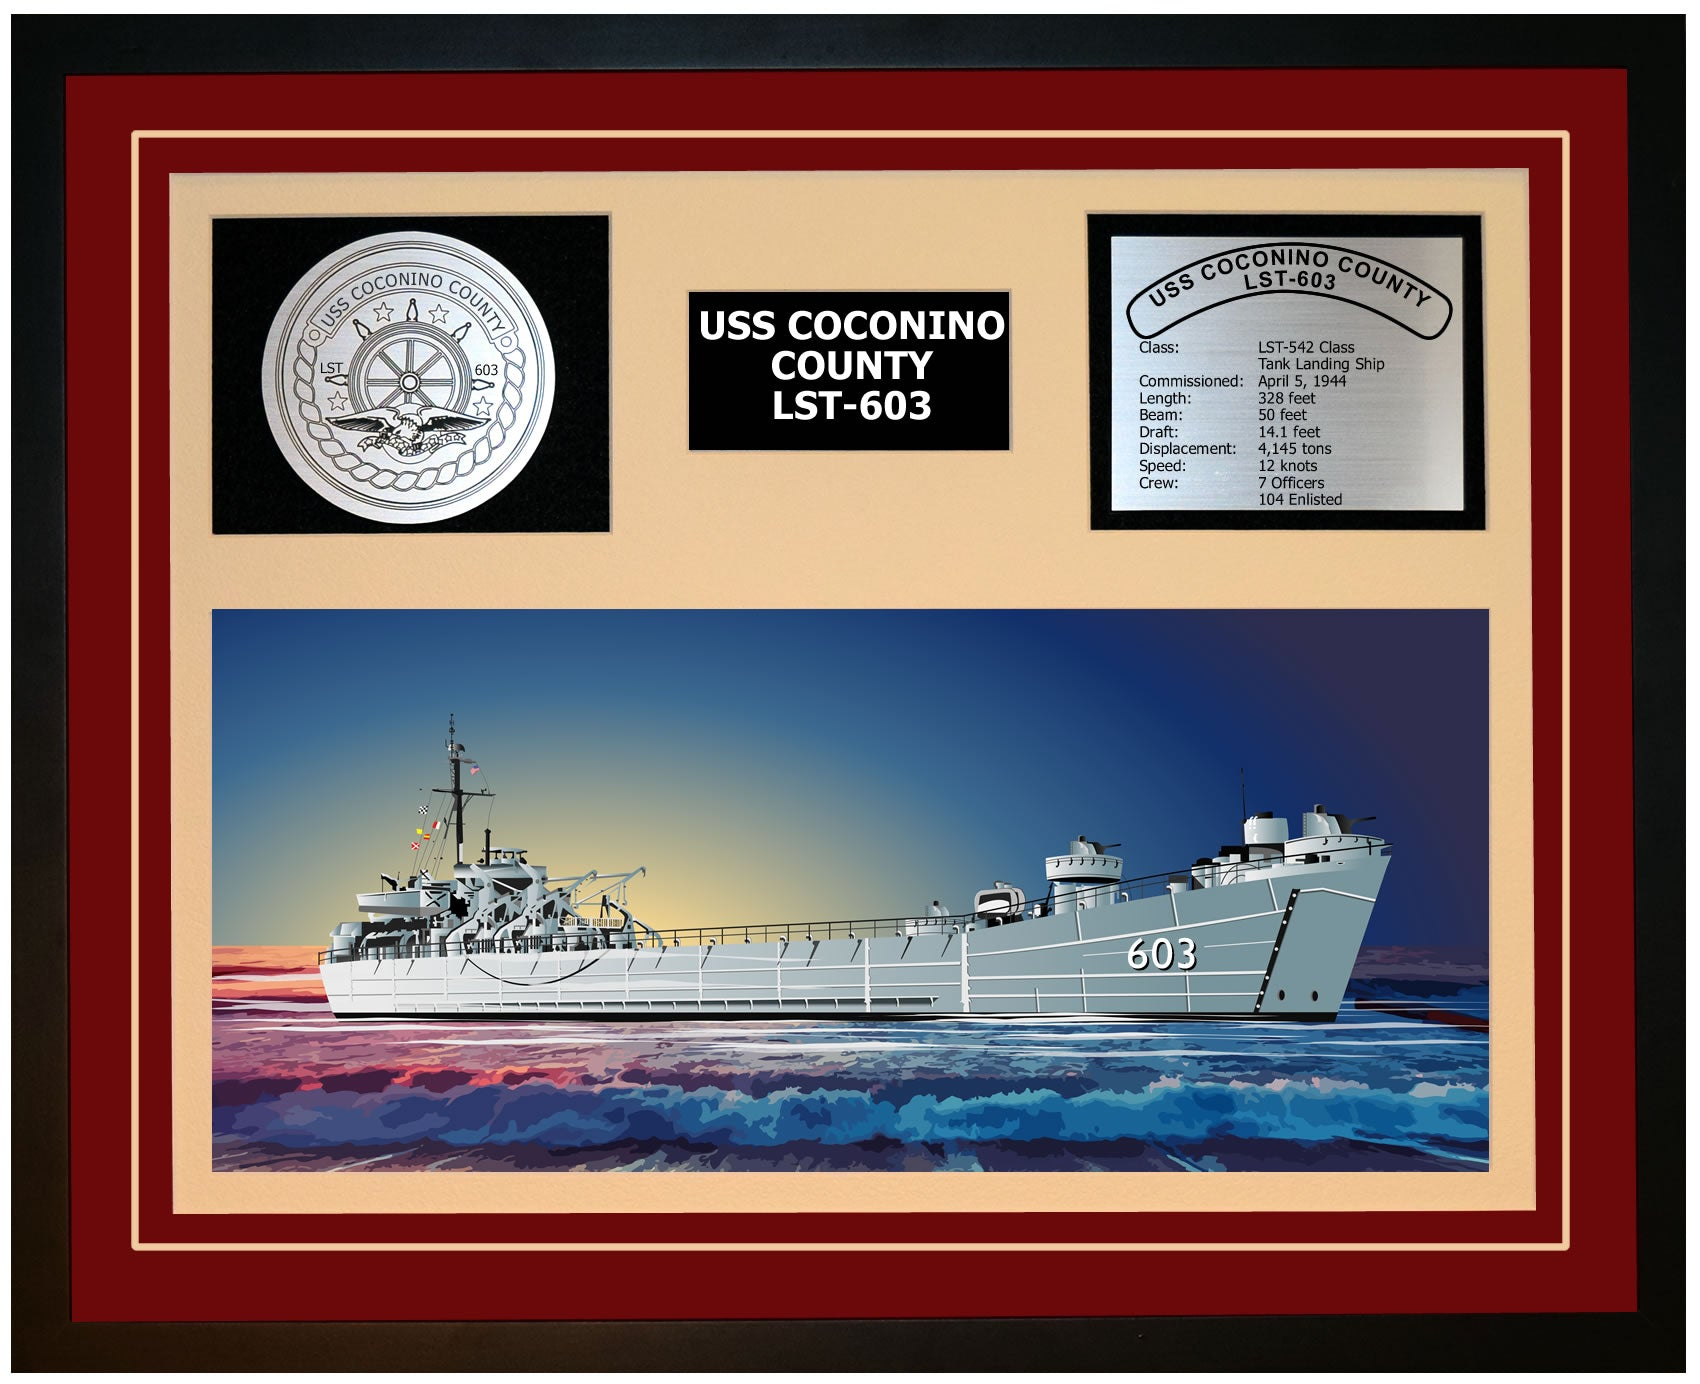 USS COCONINO COUNTY LST-603 Framed Navy Ship Display Burgundy